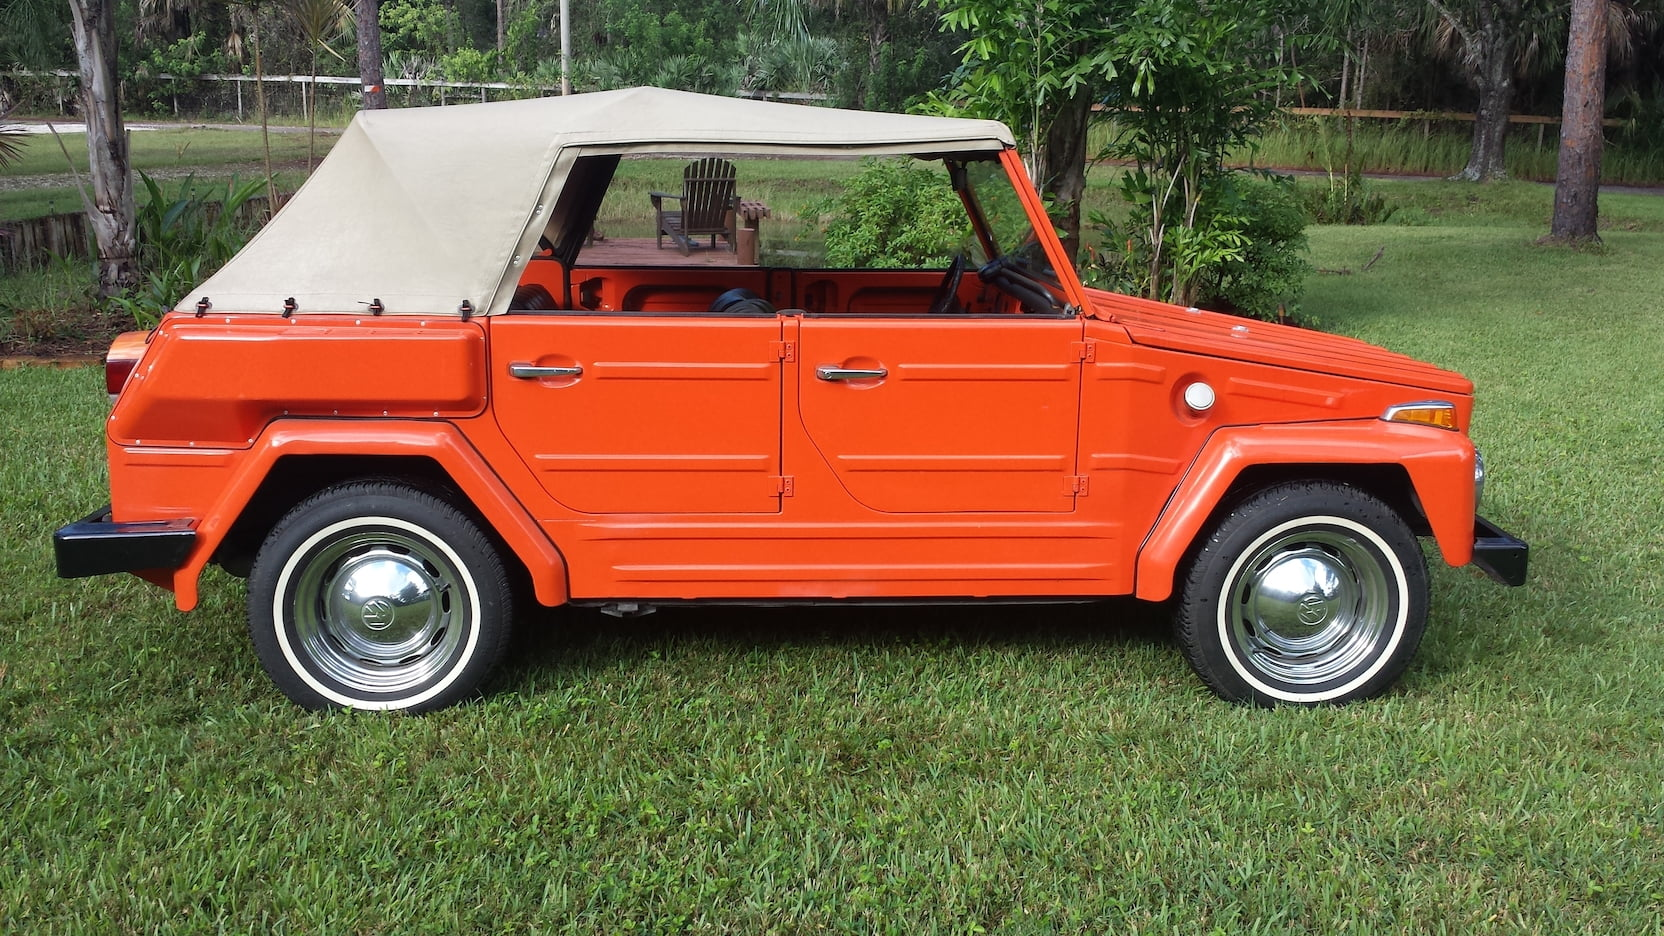 1974 Volkswagen Thing top up side